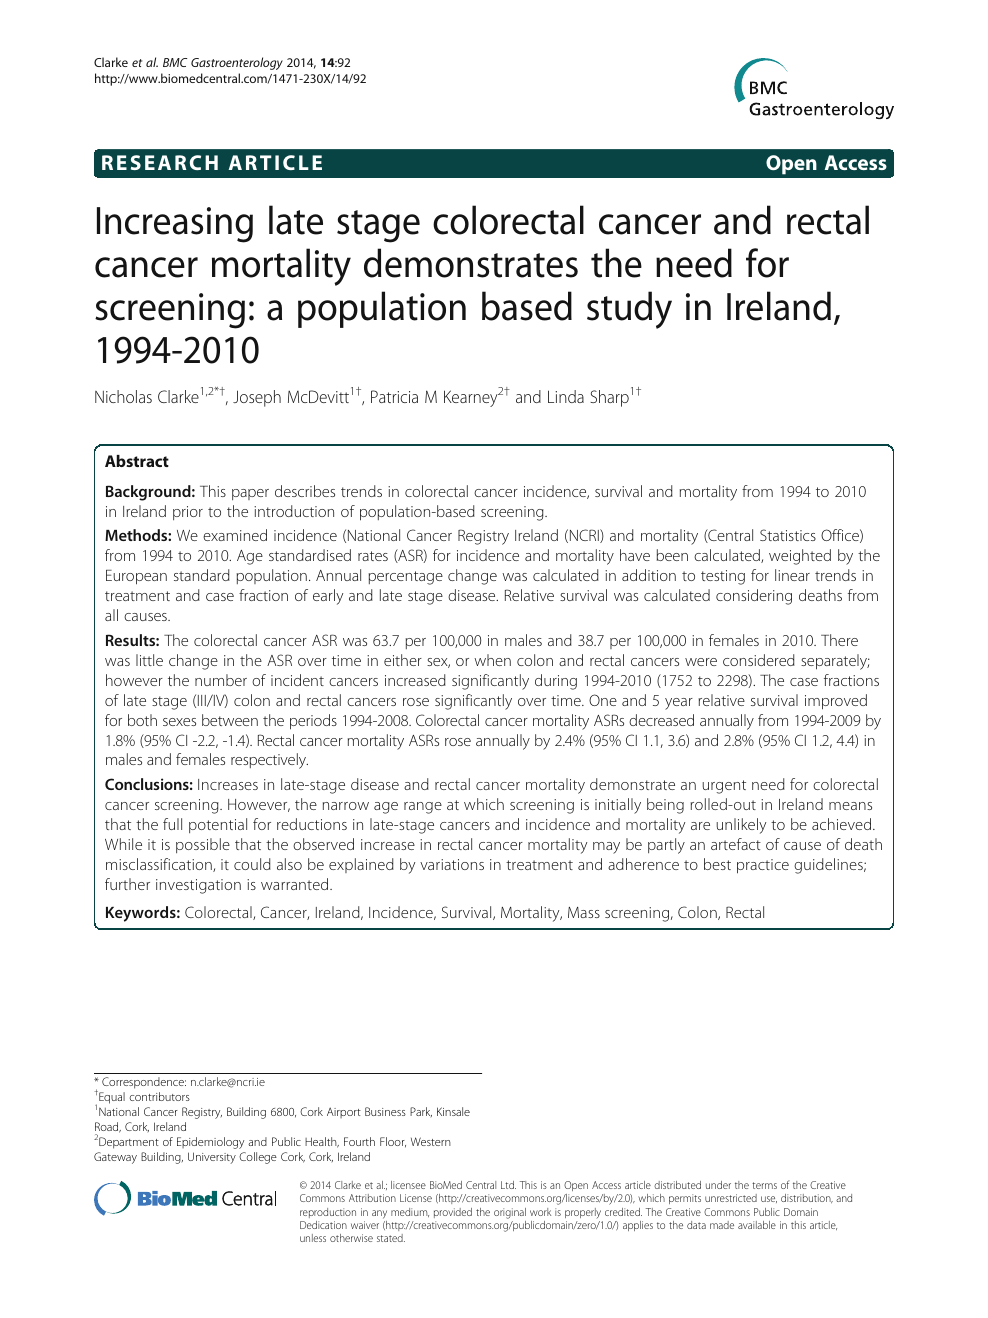 Increasing late stage colorectal cancer and rectal cancer